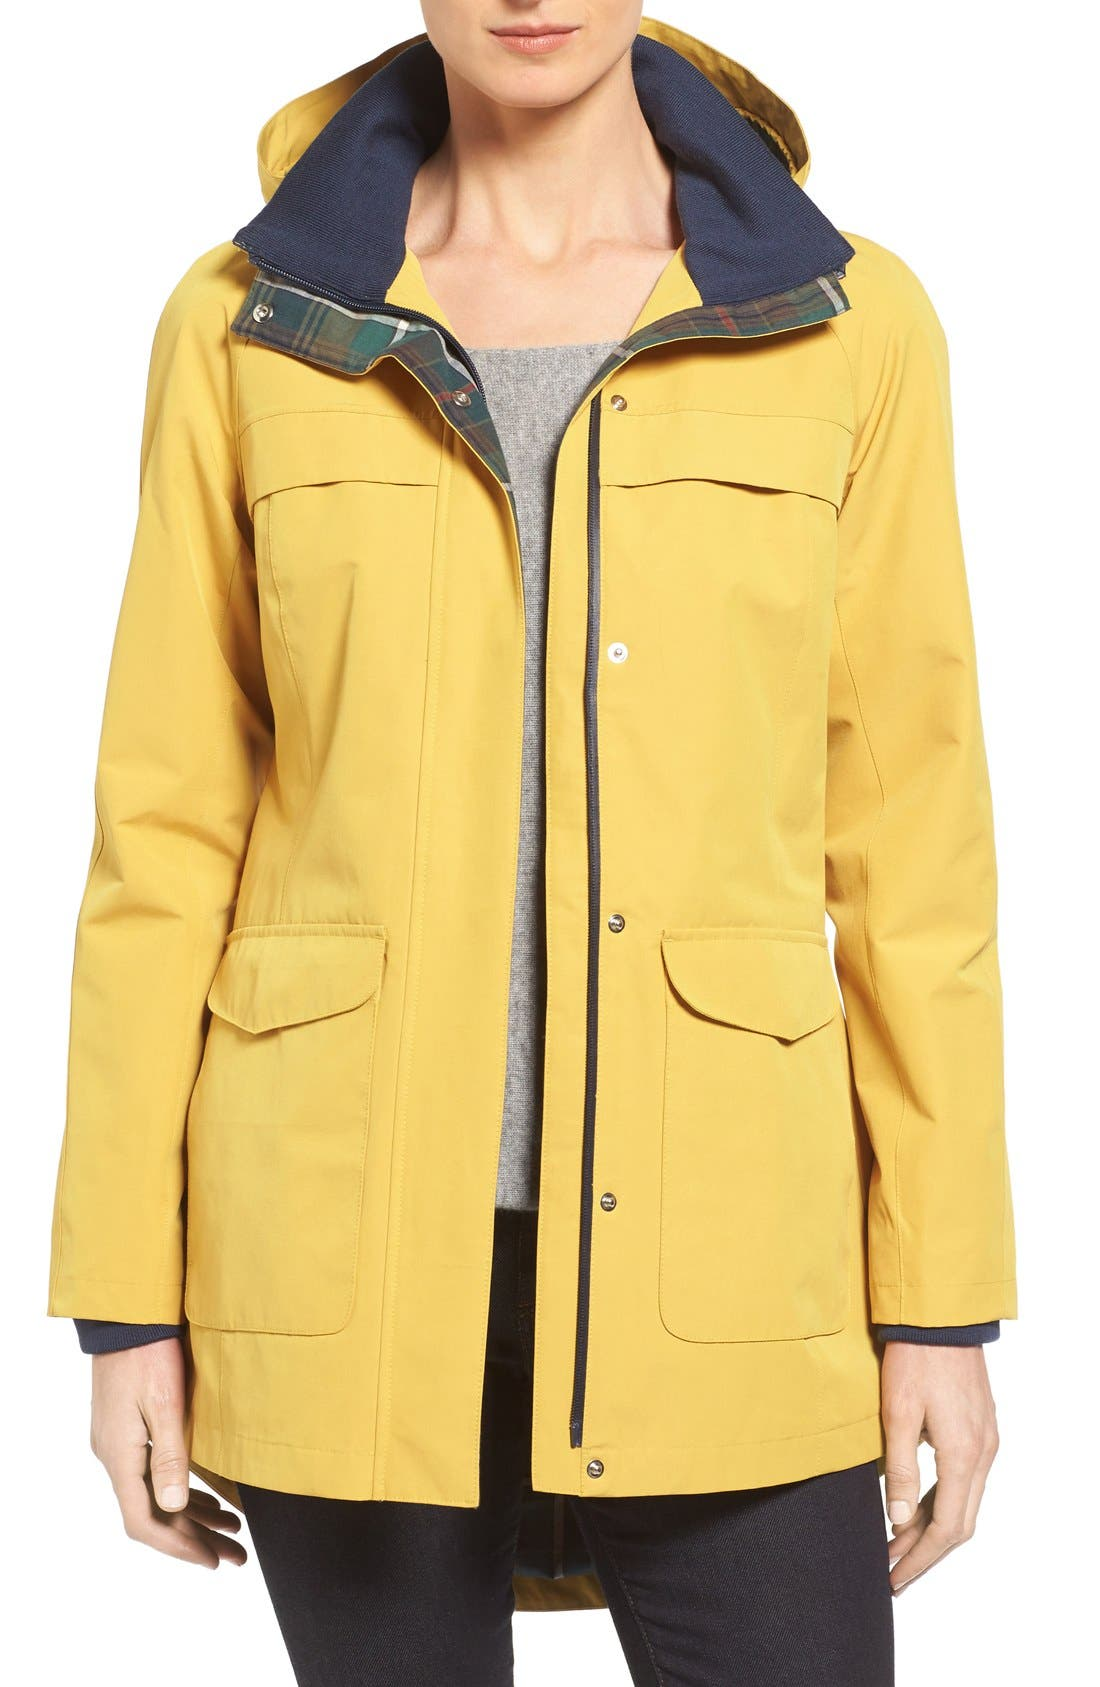 Alternate Image 1 Selected - Pendleton Hooded Raincoat